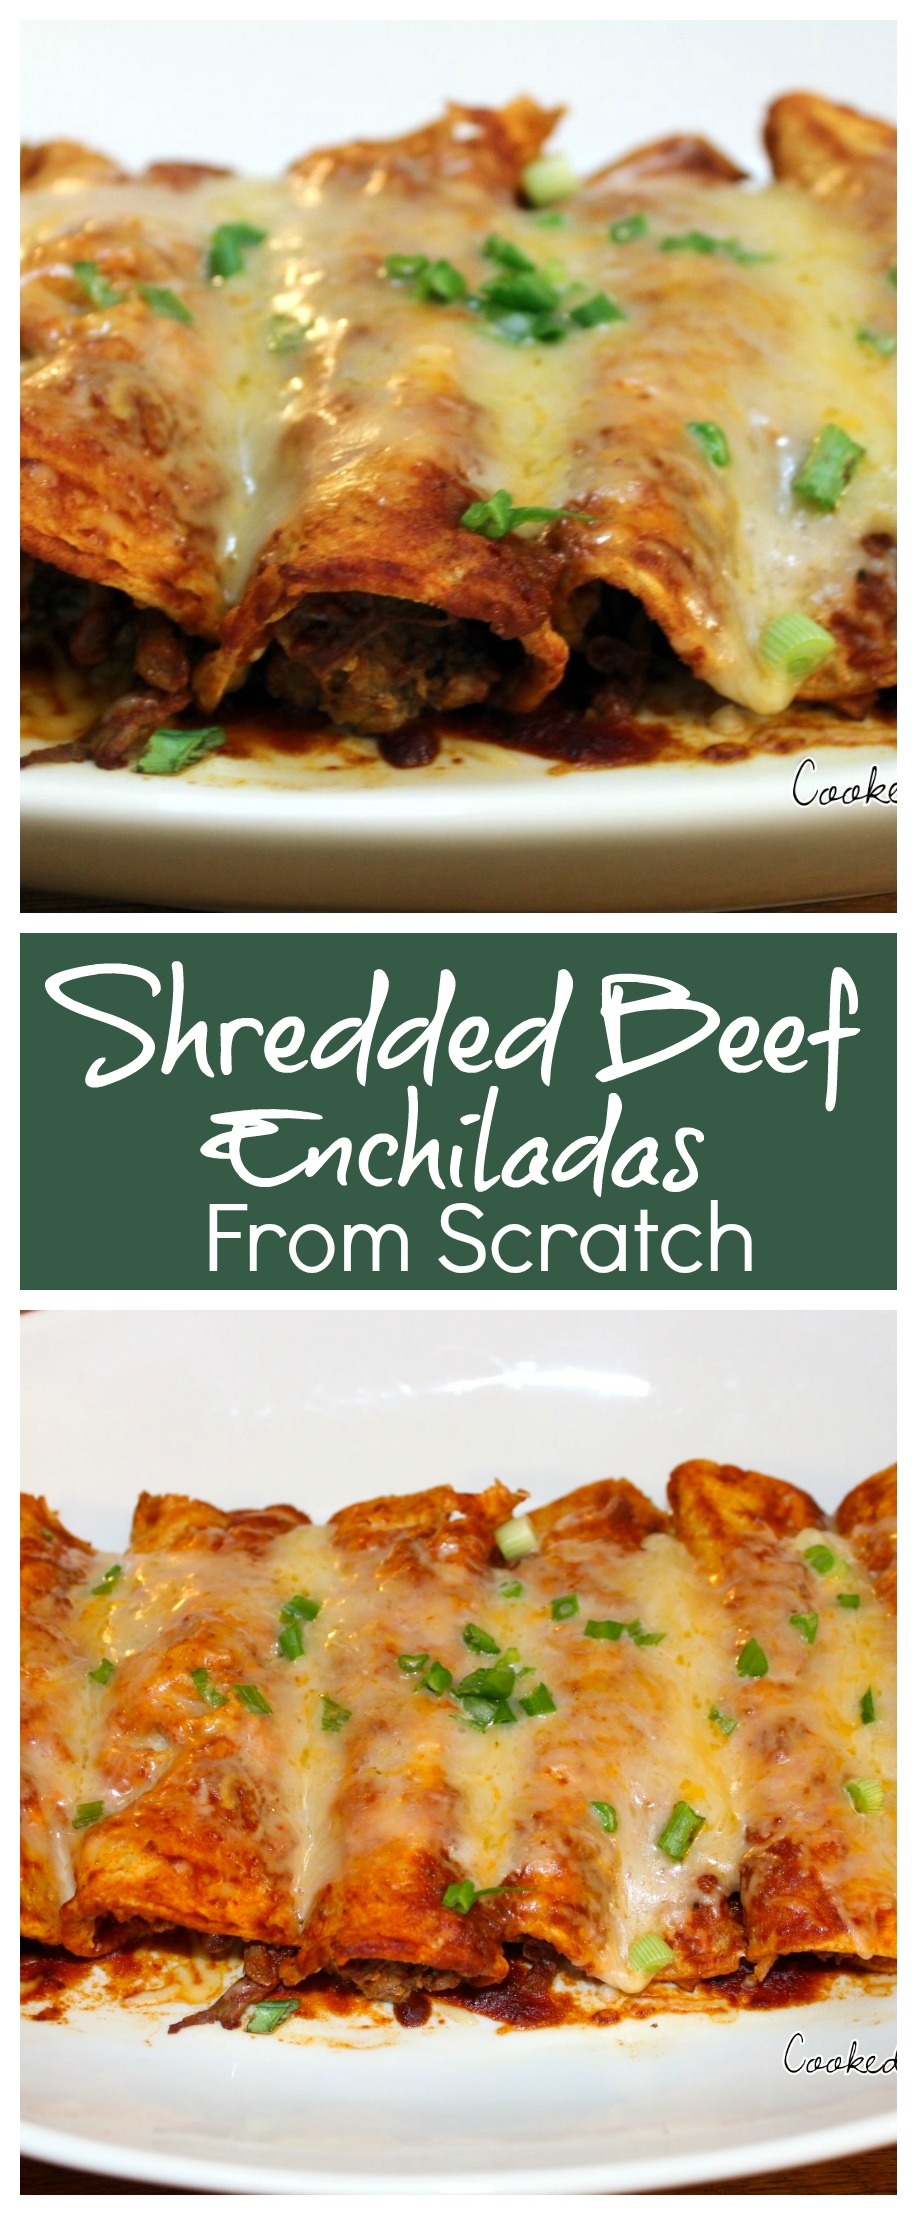 Shredded Beef Enchiladas from Scratch | How to Make Shredded Beef Enchiladas